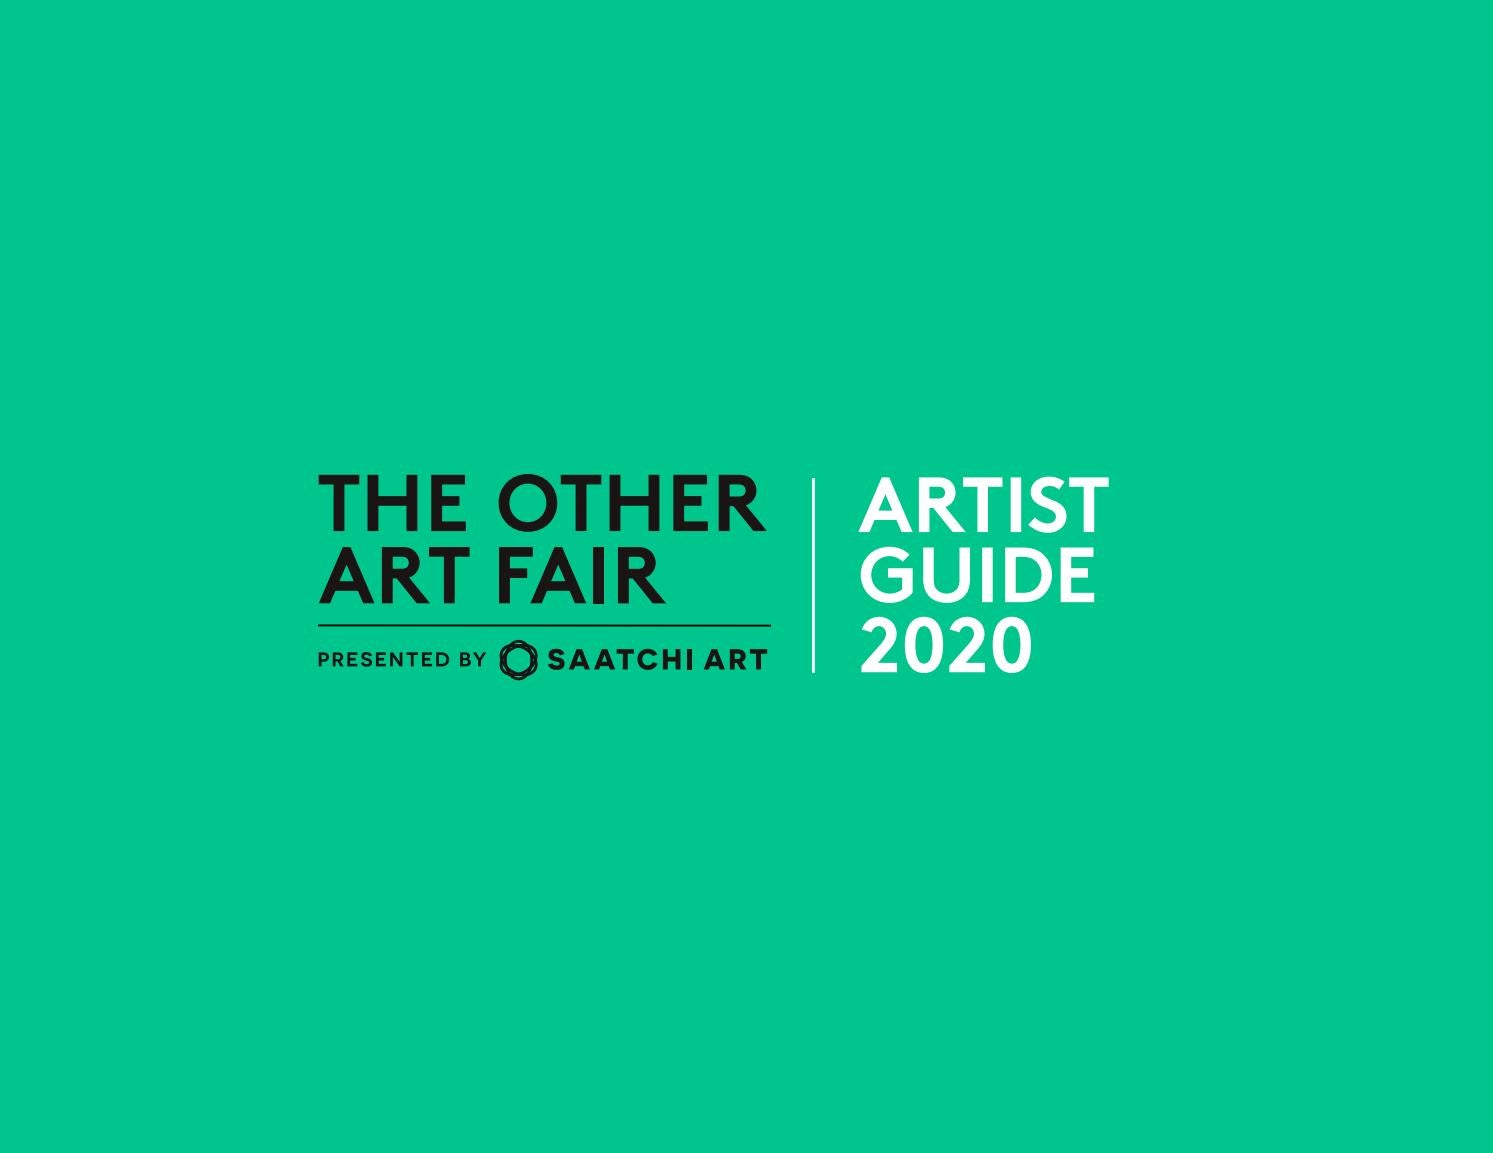 The Other Art Fair Artist Guide 2020 By Theotherartfair Issuu